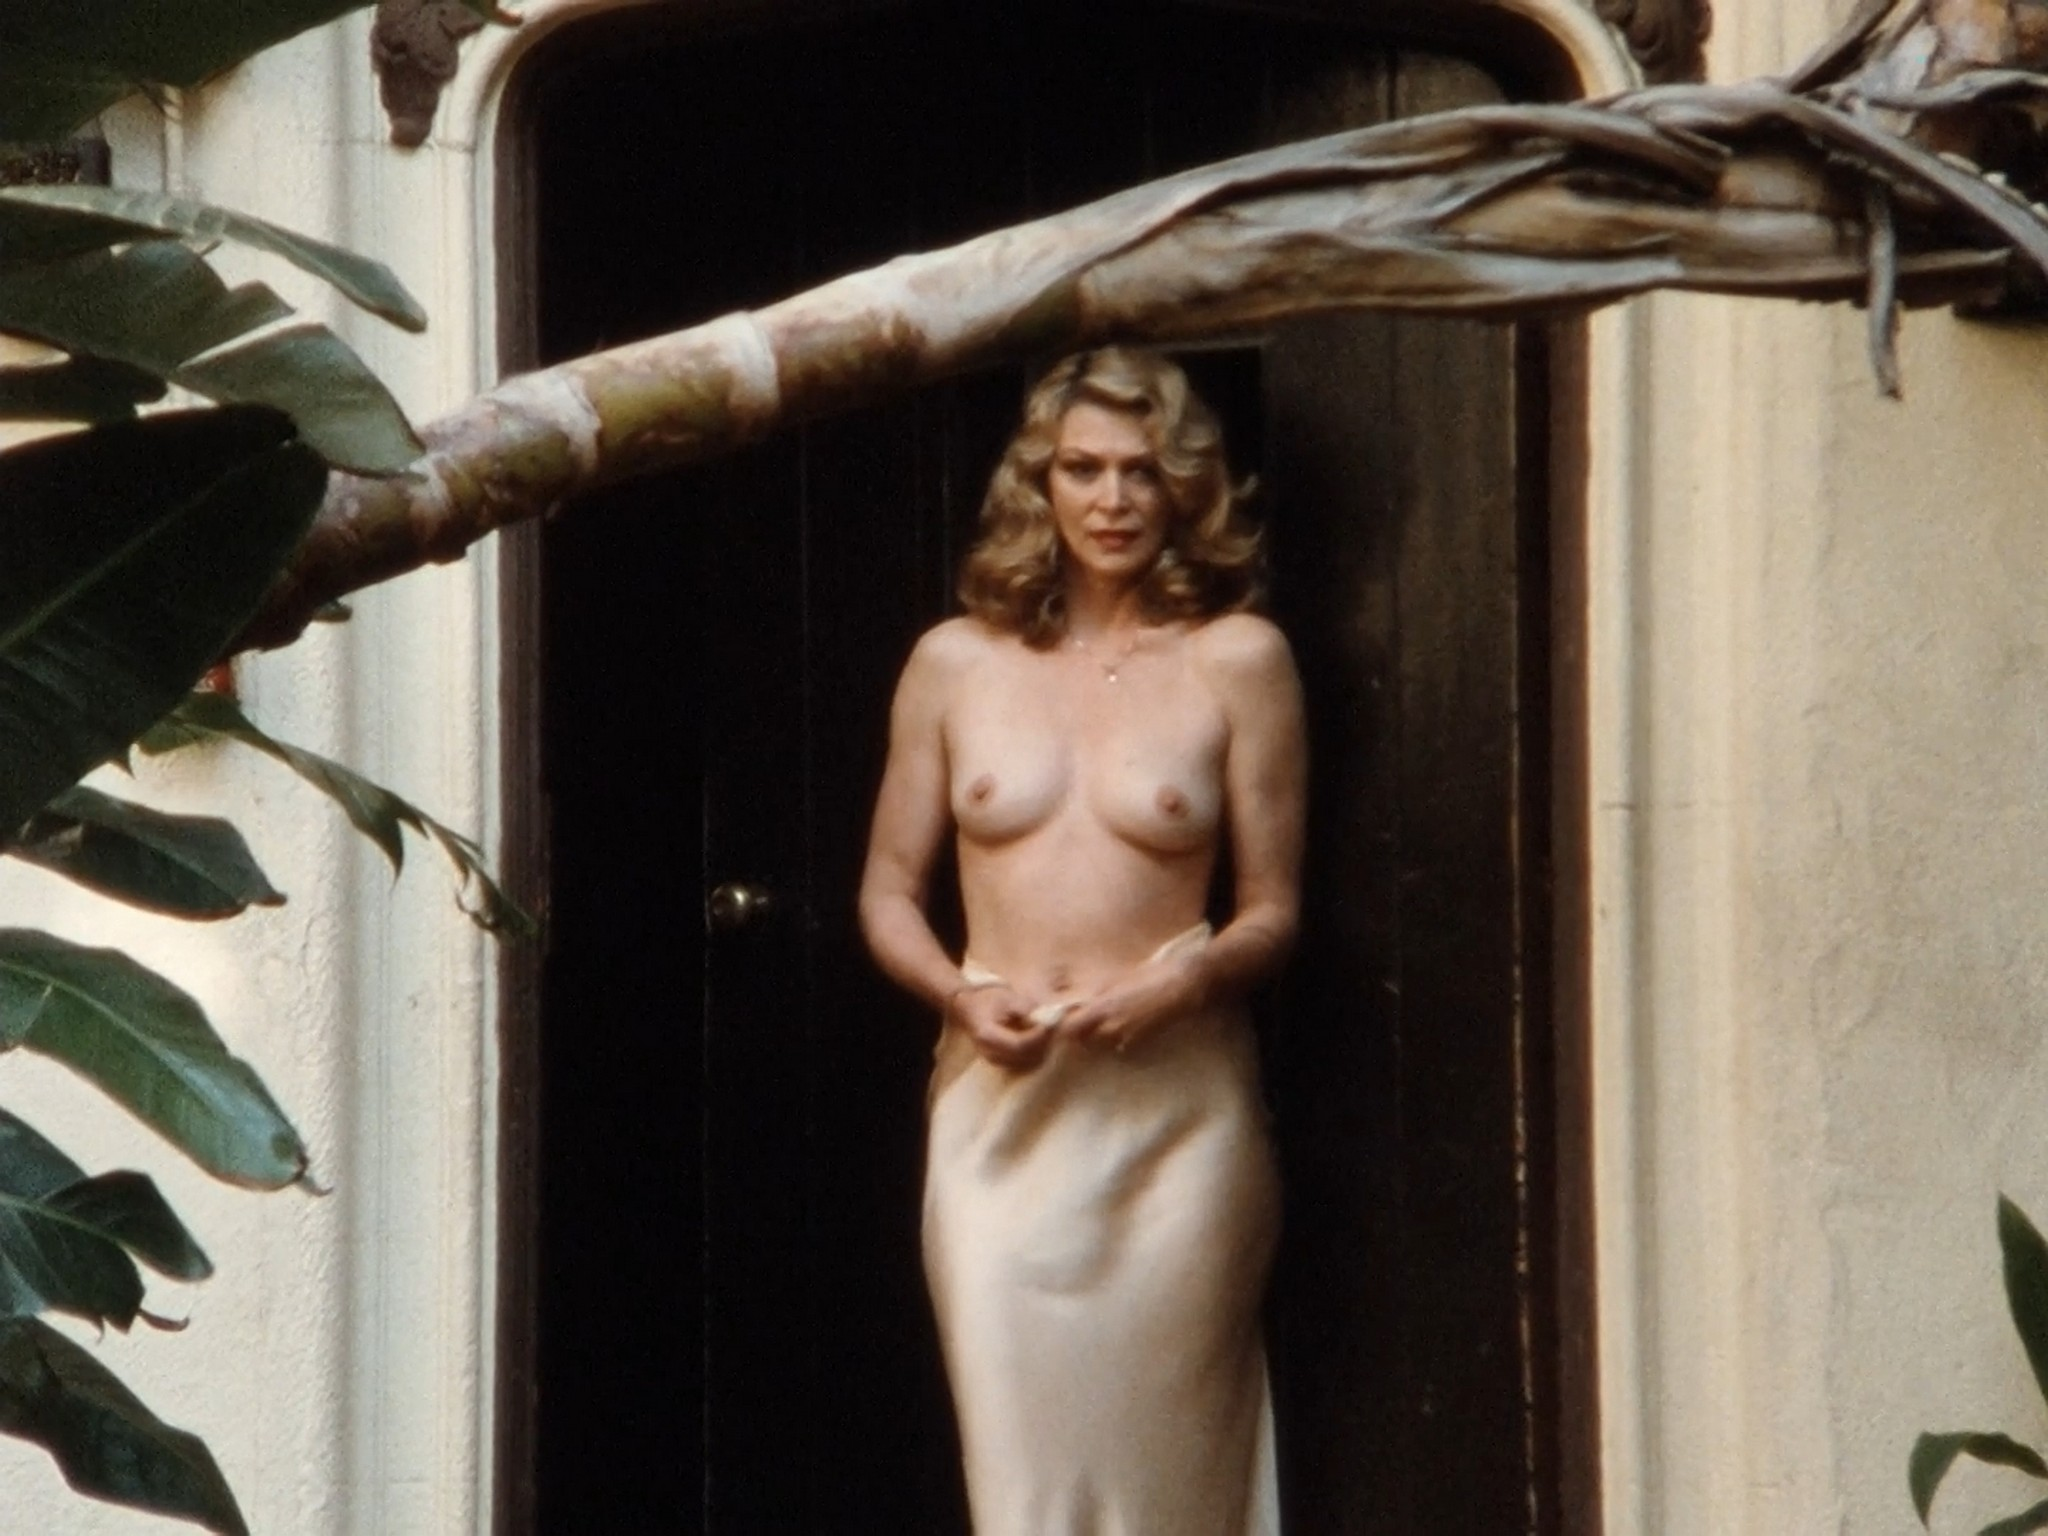 Sigourney Weaver hot Charlotte Rampling nude others nude most full frontal Helmut Newton Frames from the Edge 1989 1080p BluRay 7